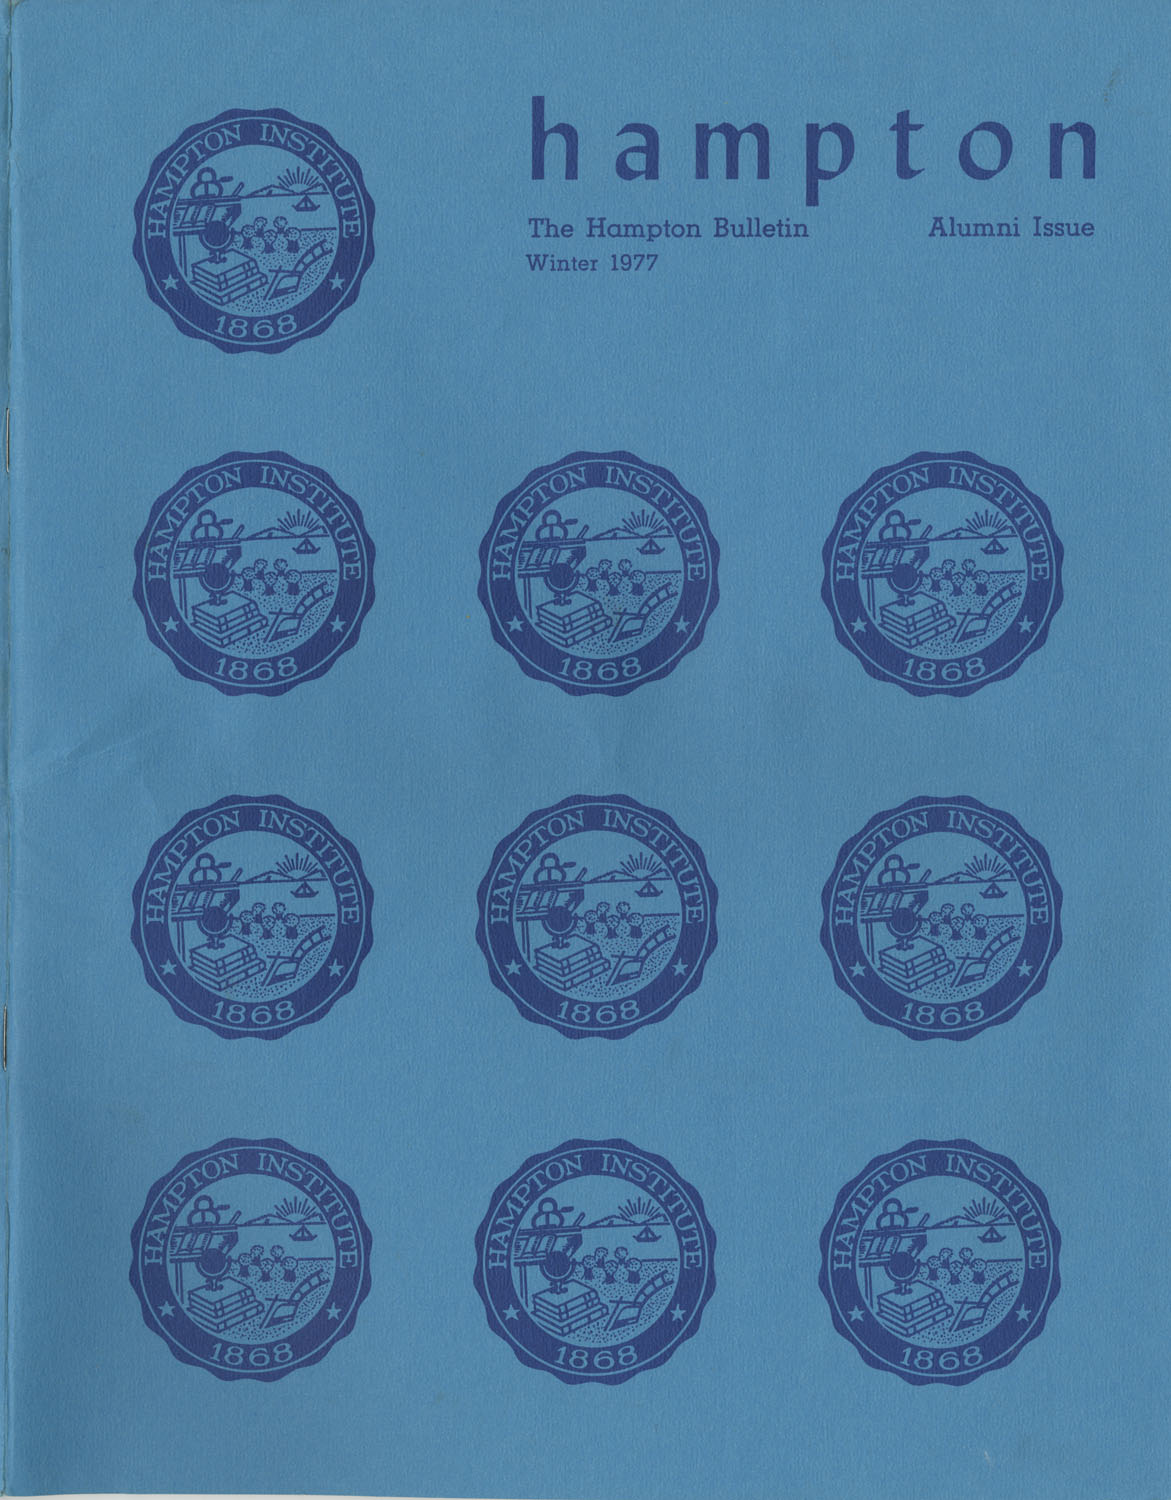 The Hampton Bulletin, Winter 1977, Front Cover